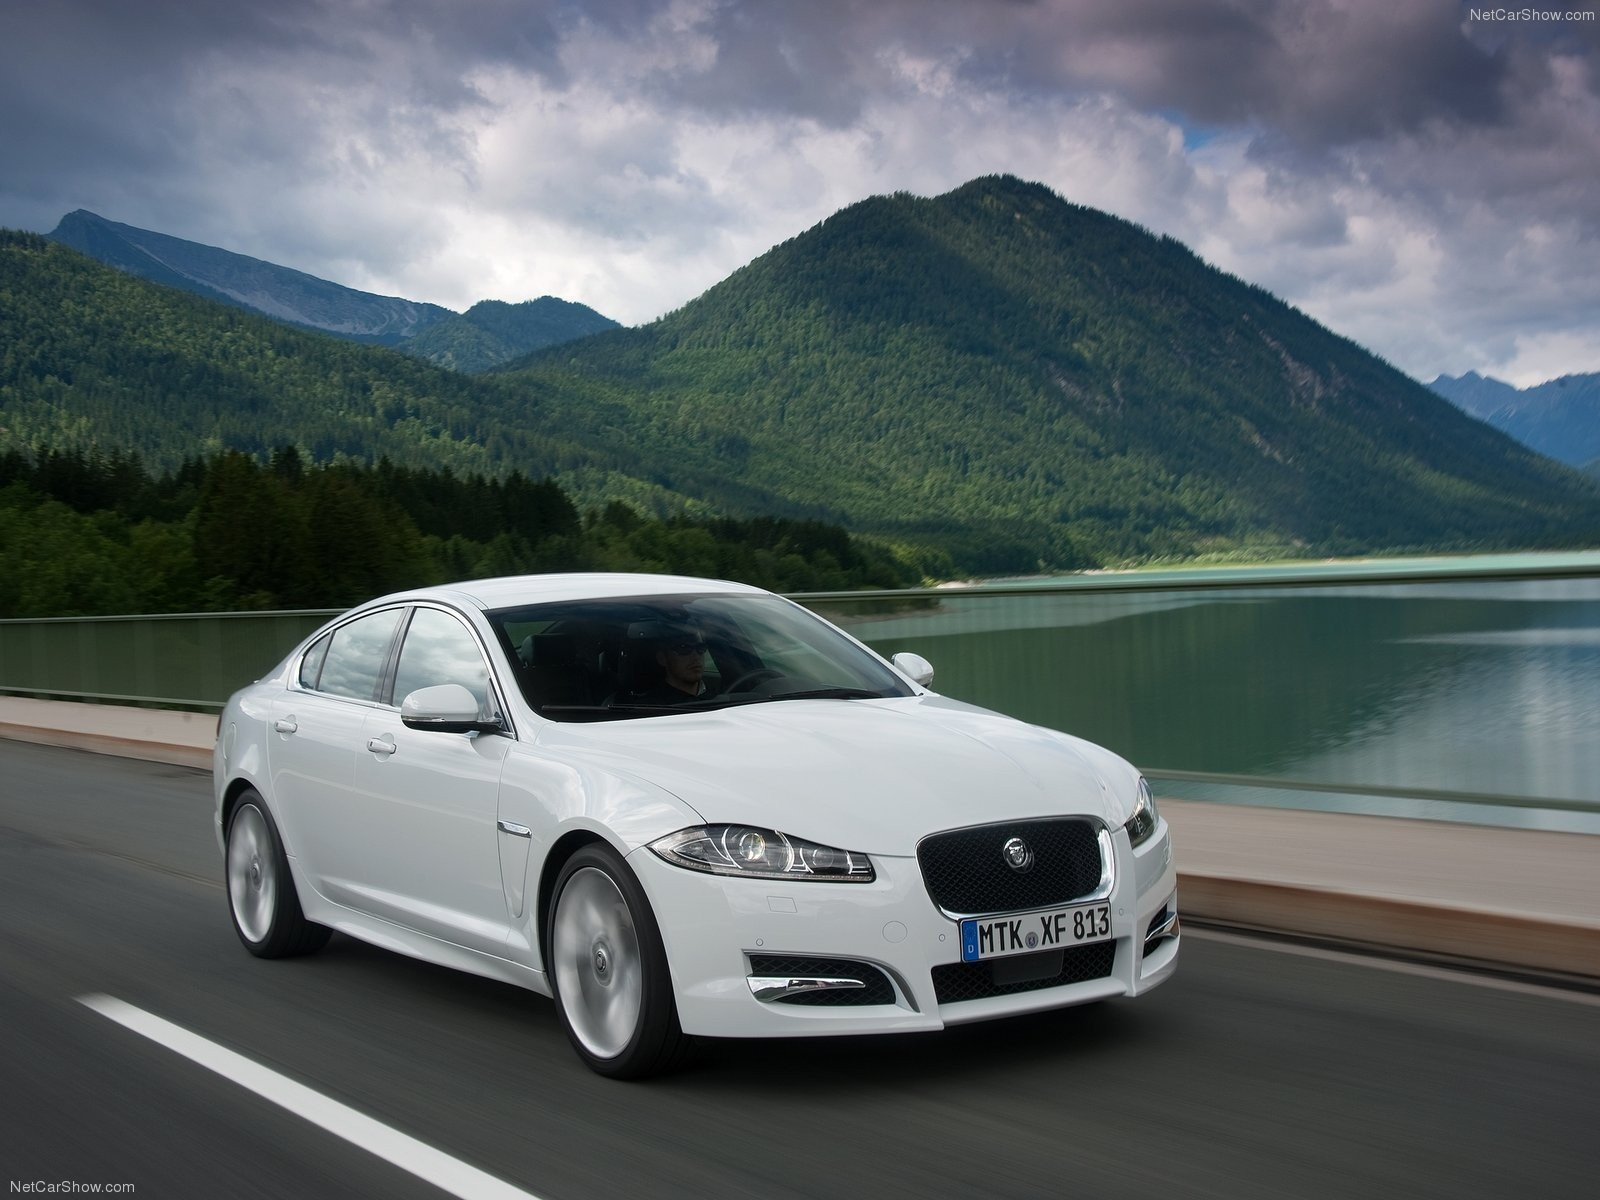 Jaguar Xf Wallpaper Wallpapersafari